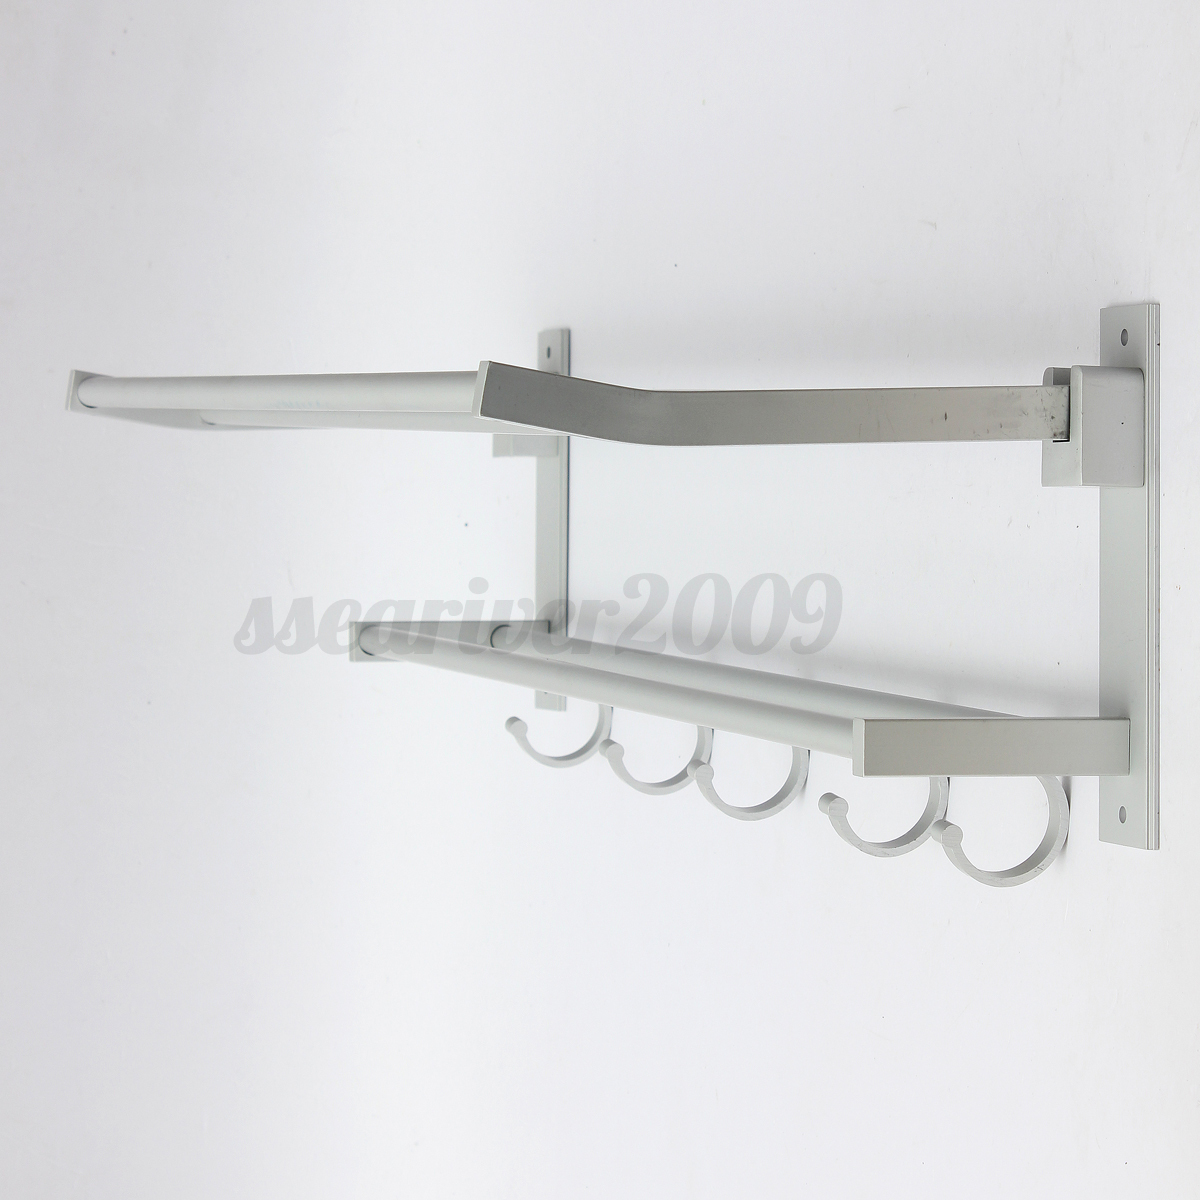 Bathroom Wall Hooks Towels: Wall Mounted Towel Rack Holder Hook Hanger Bar Shelf Rail